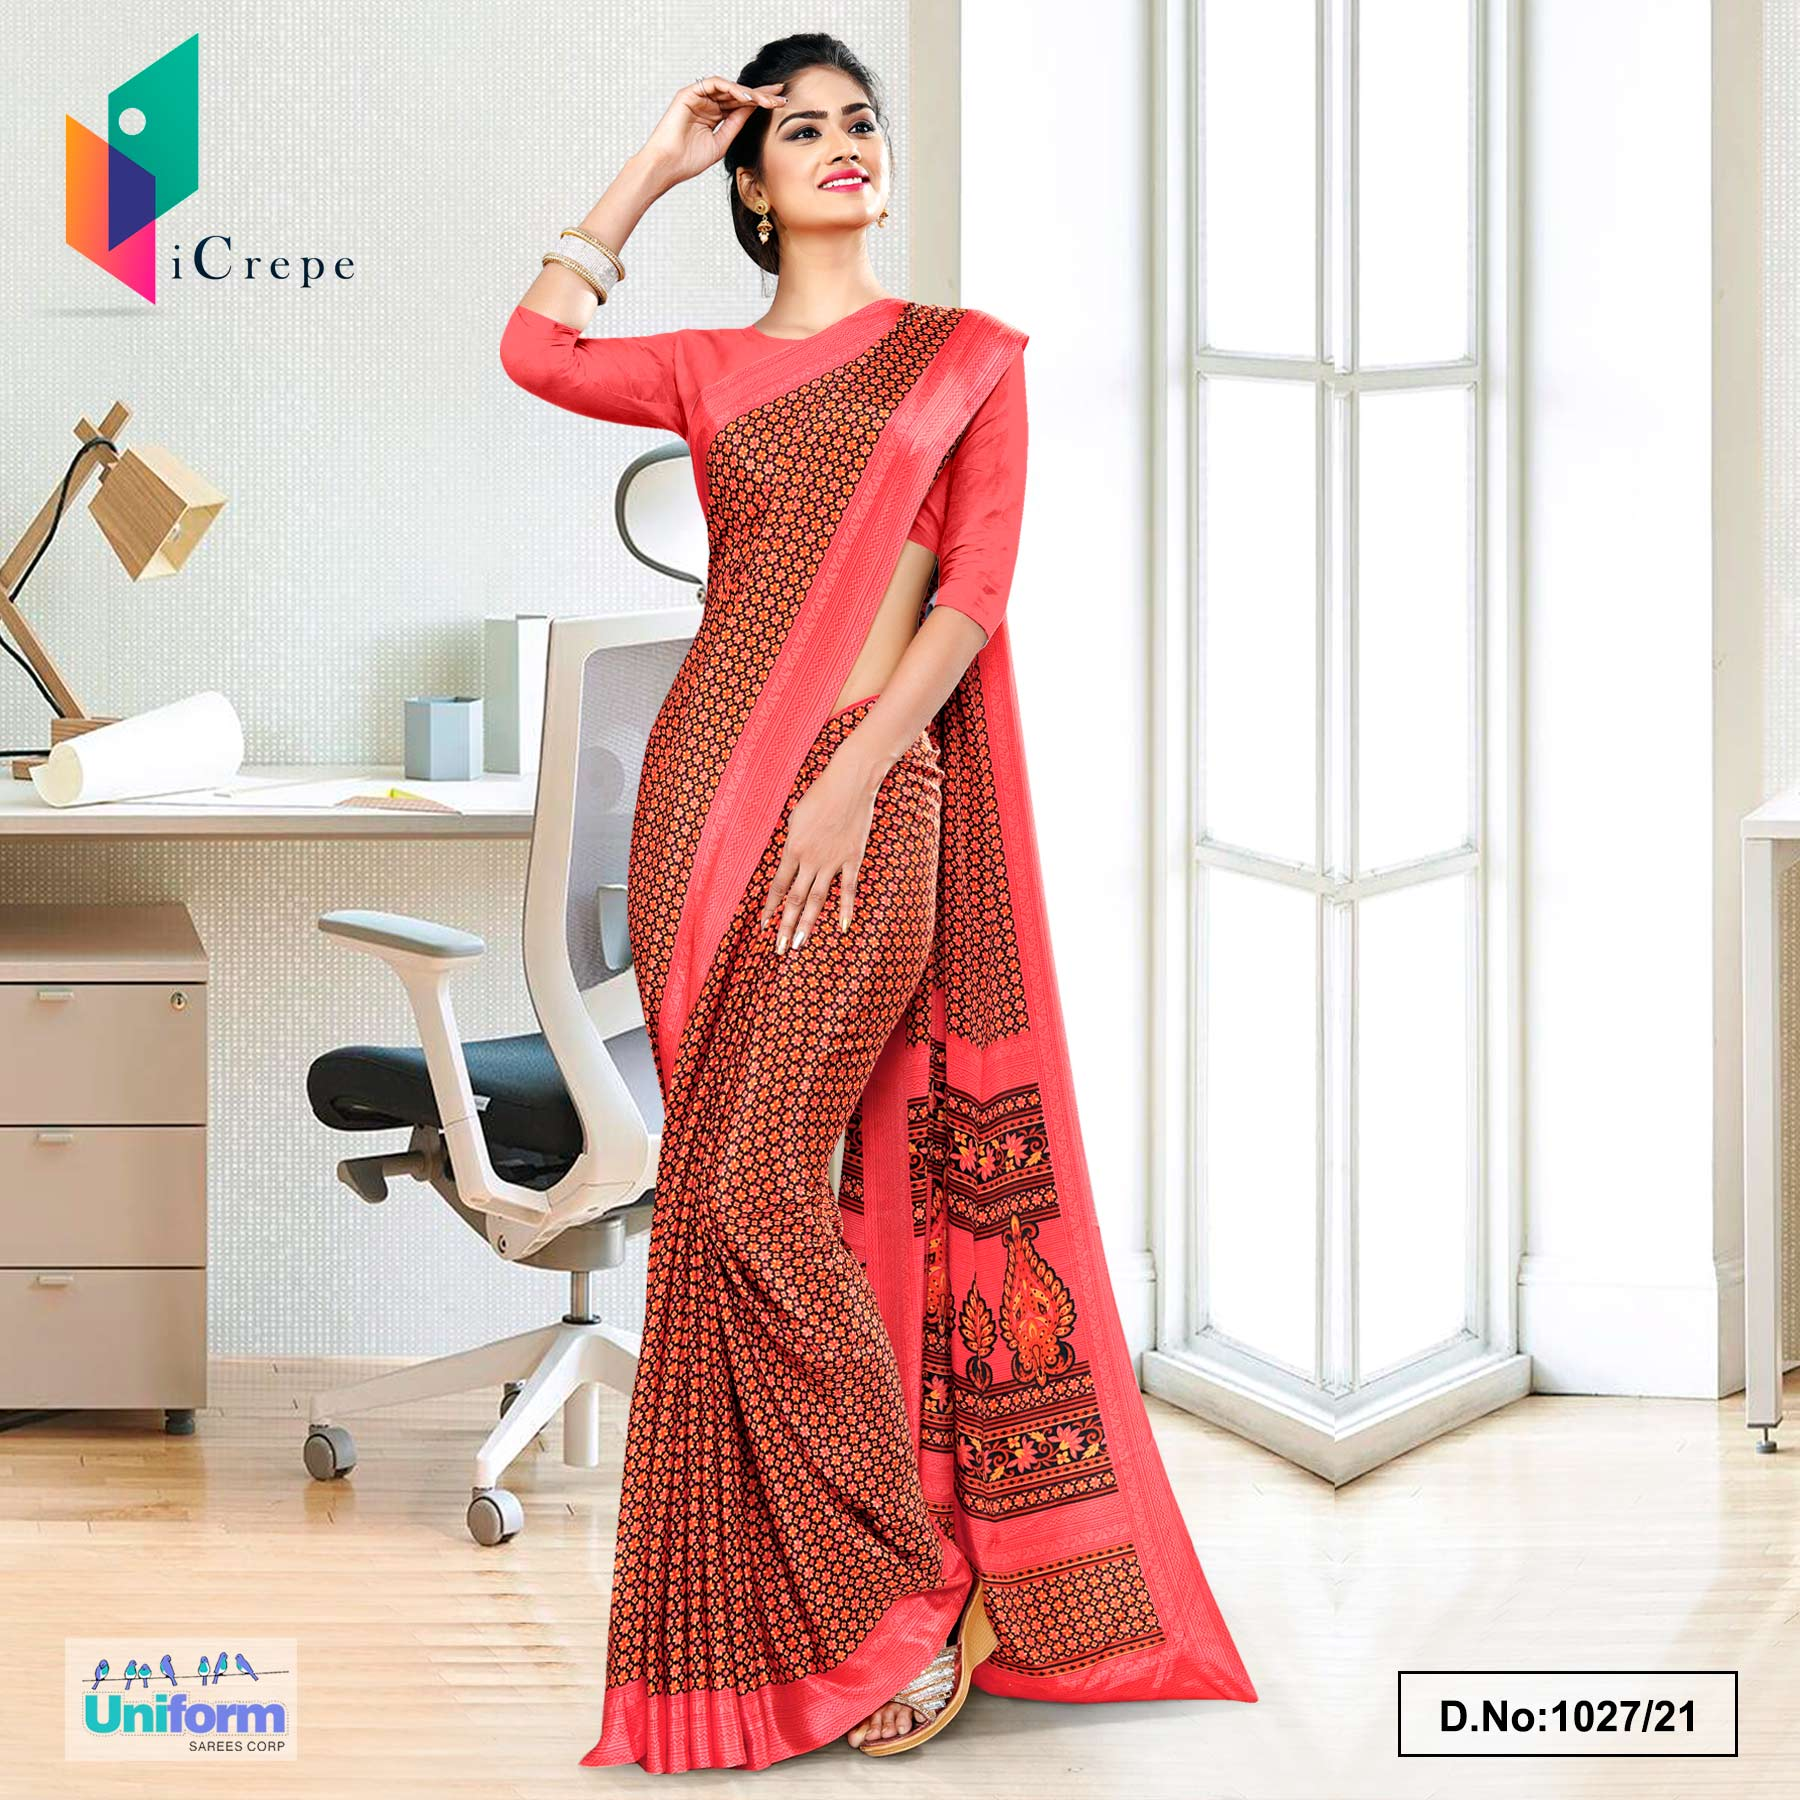 Carrot Pink  and Brown Small Print Premium Italian Silk Crepe Uniform Sarees for School Teachers